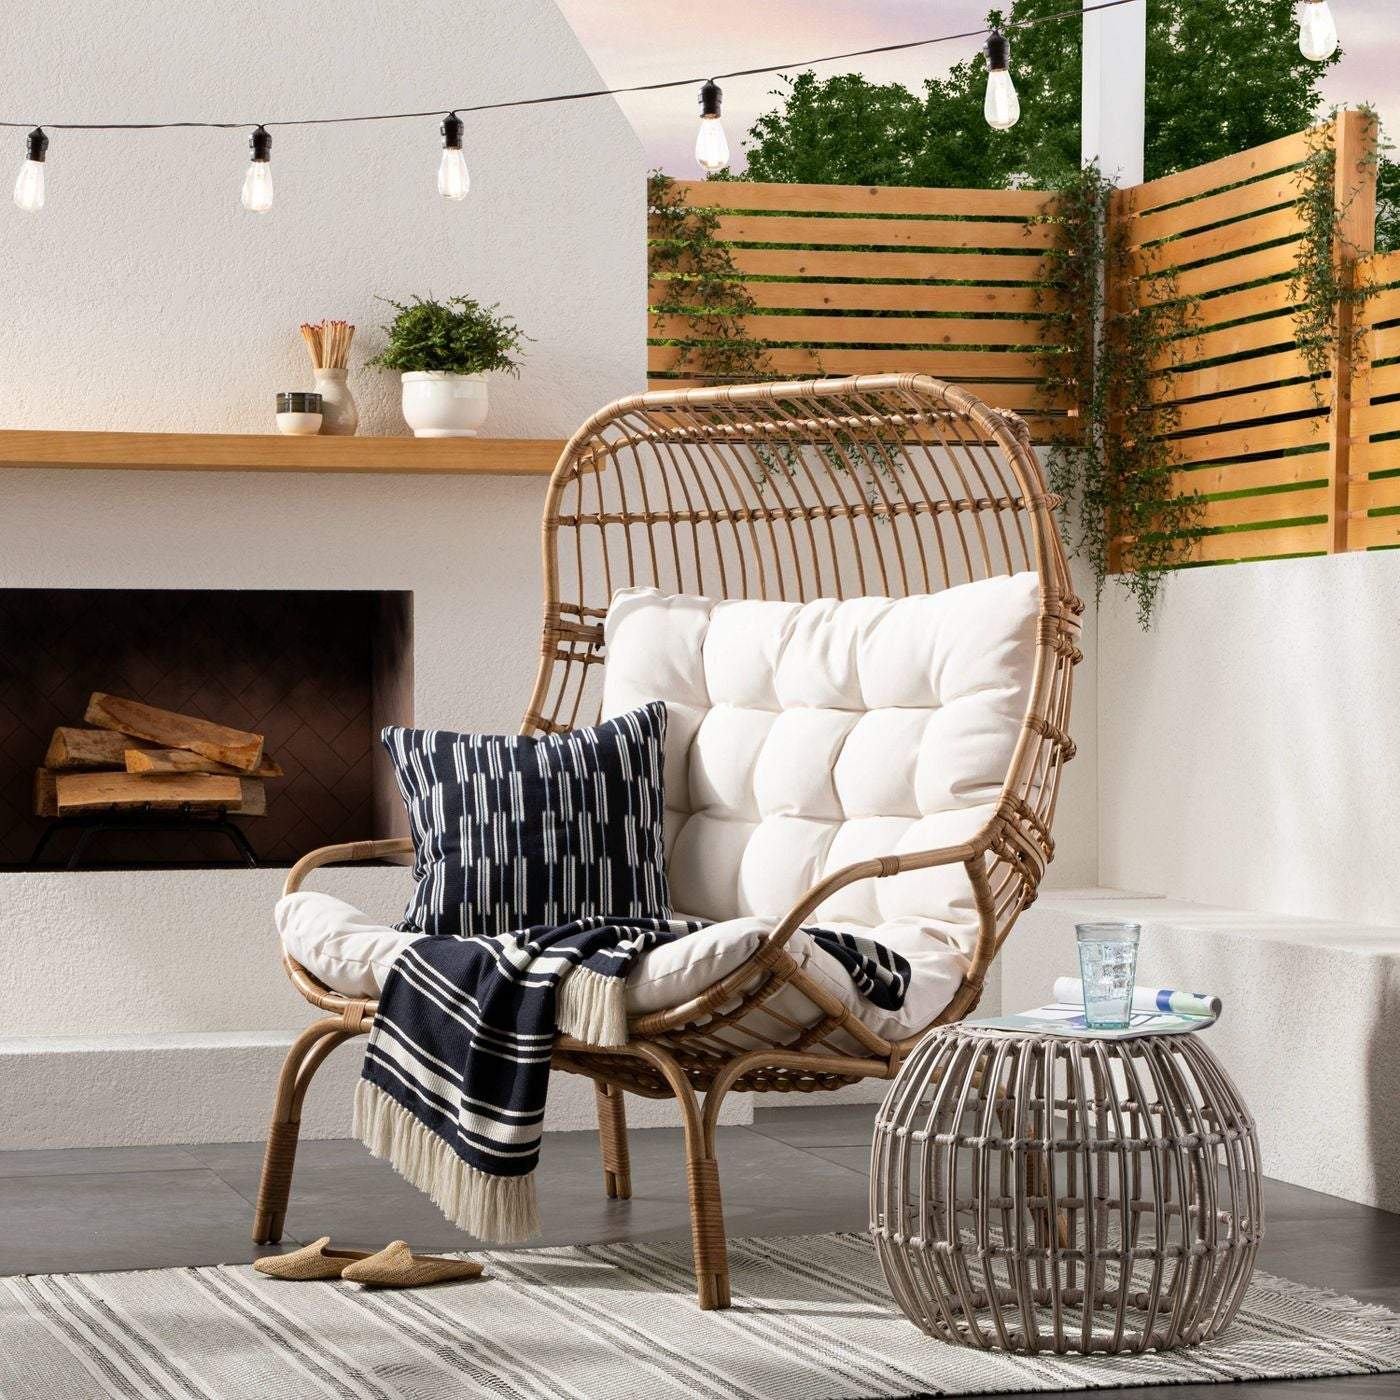 large wicker egg-shaped chair in brown with white tufted cushion in it